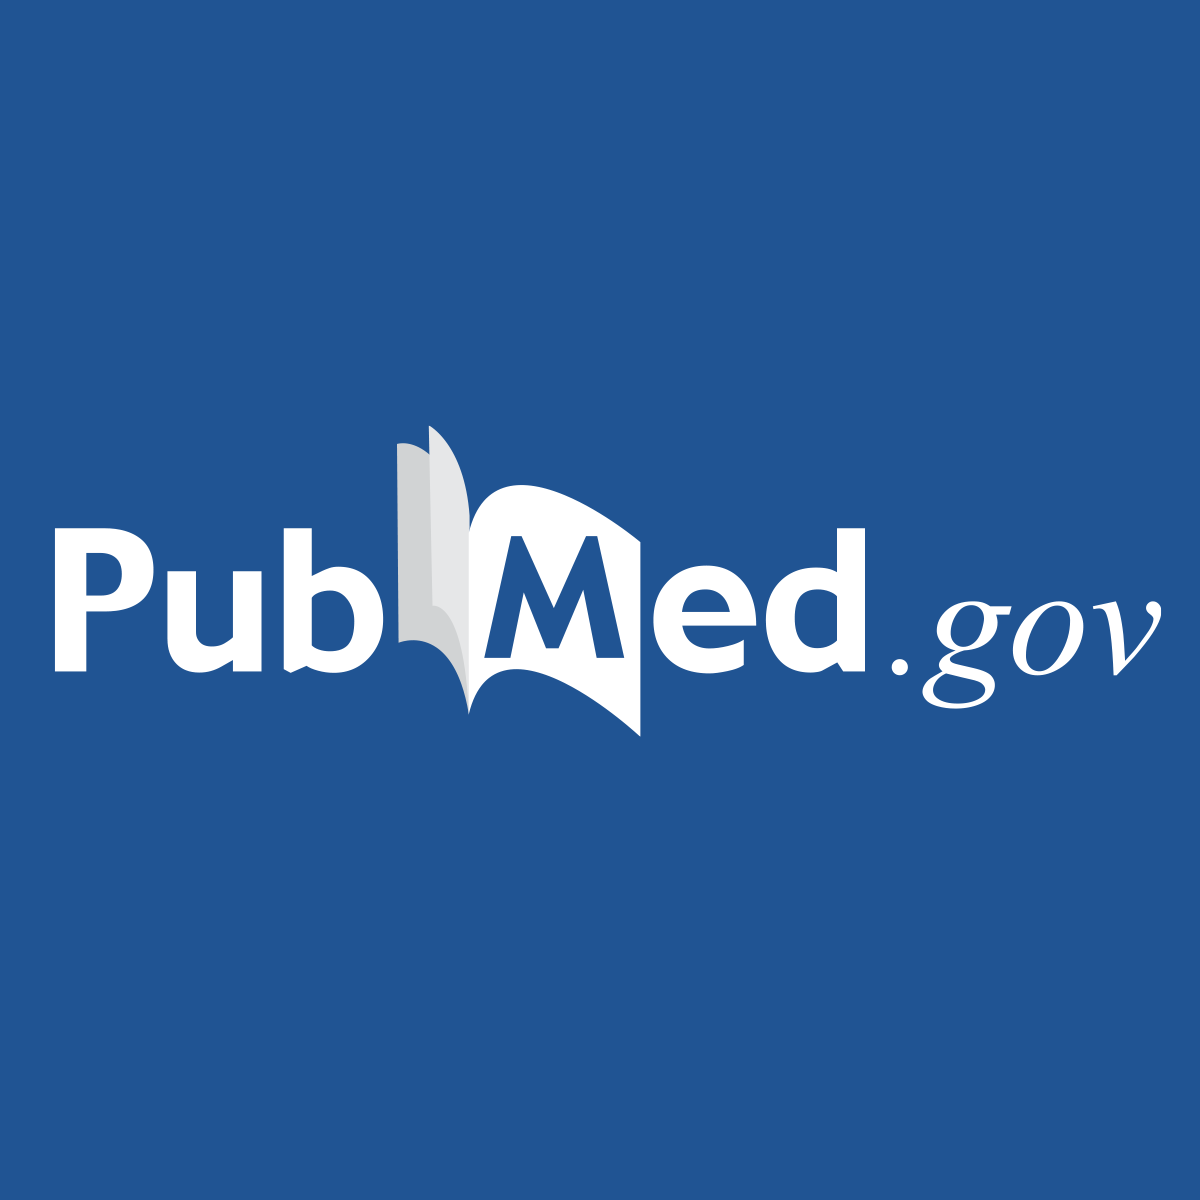 A Literature Review to Evaluate the Clinical and Economic Value of Olmesartan for the Treatment of Hypertensive Patients